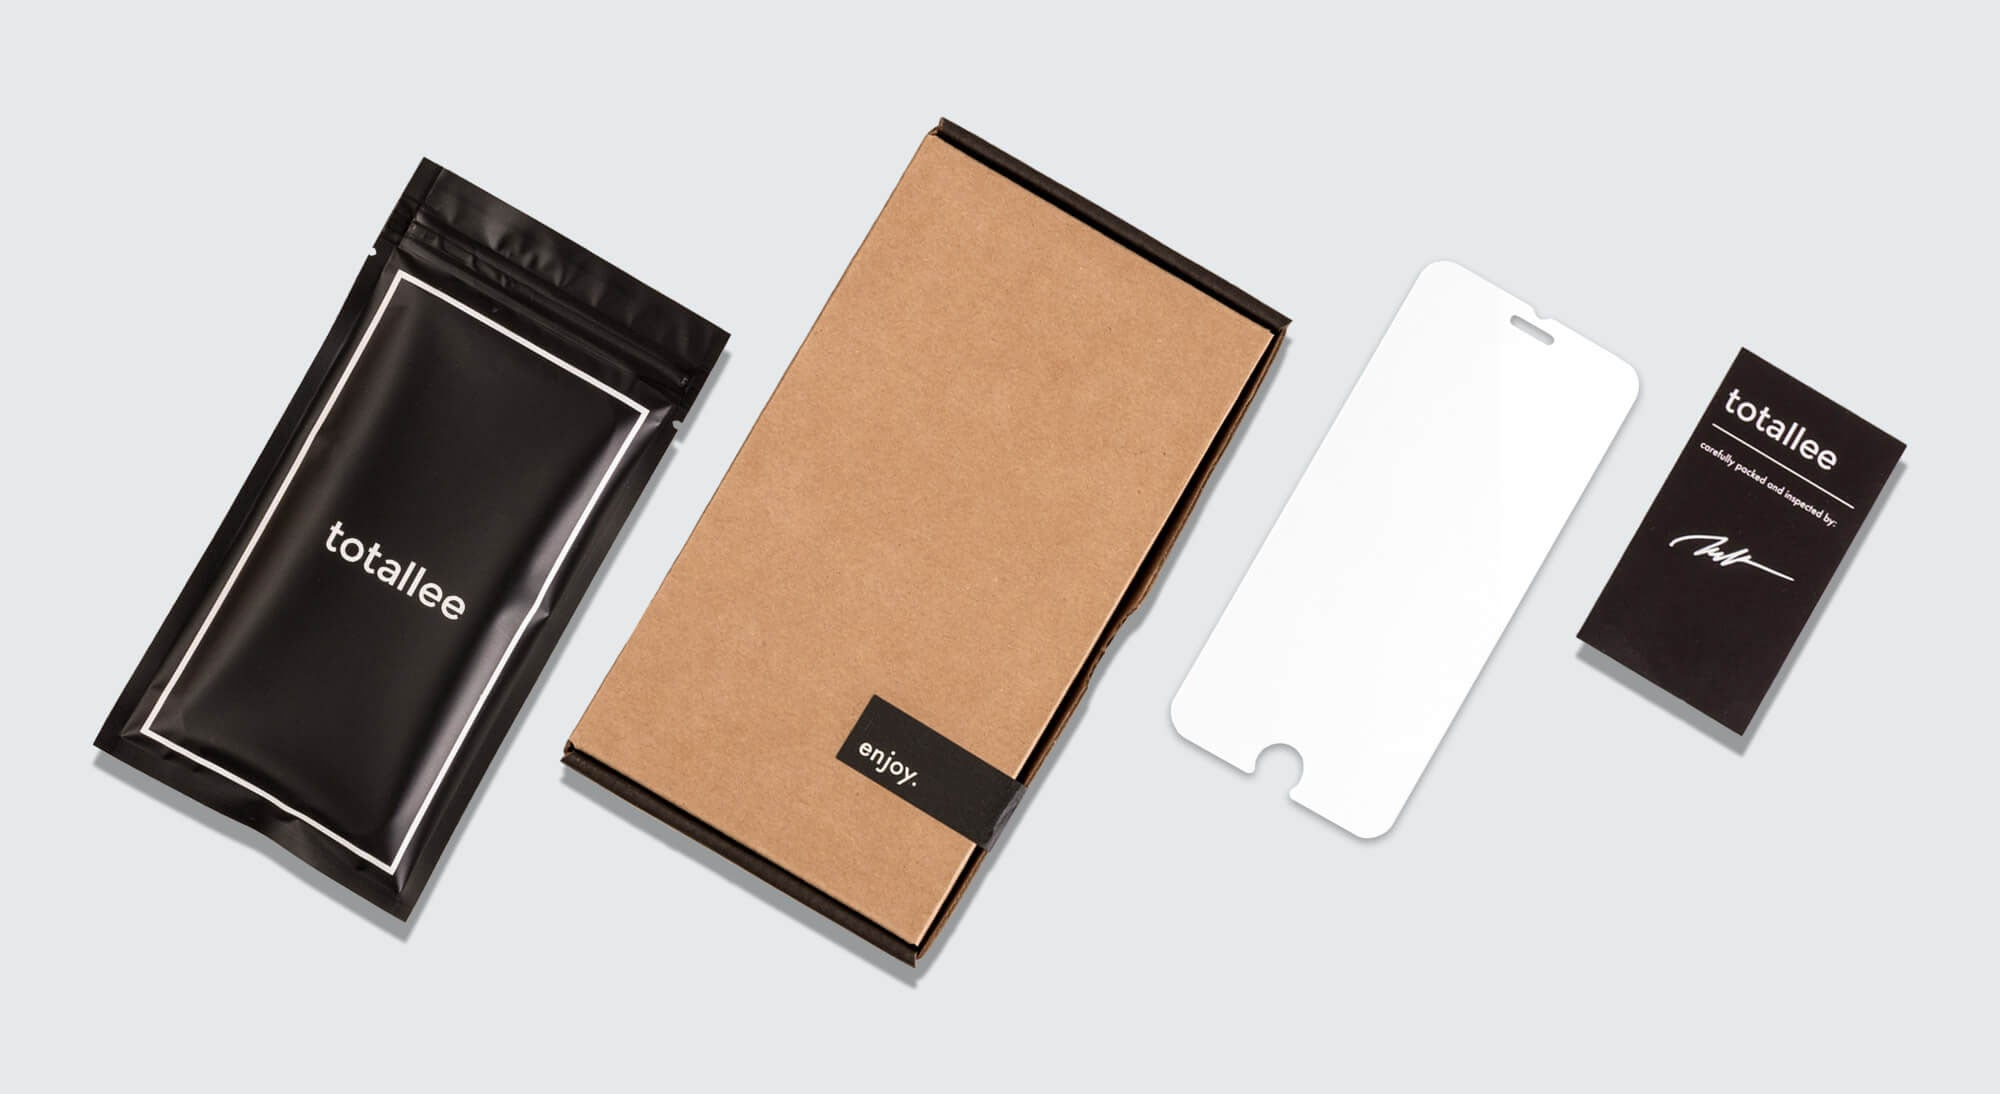 totallee's no bubble screen protector and packaging, including a kraft box, black bag, and a black hand signed warranty card